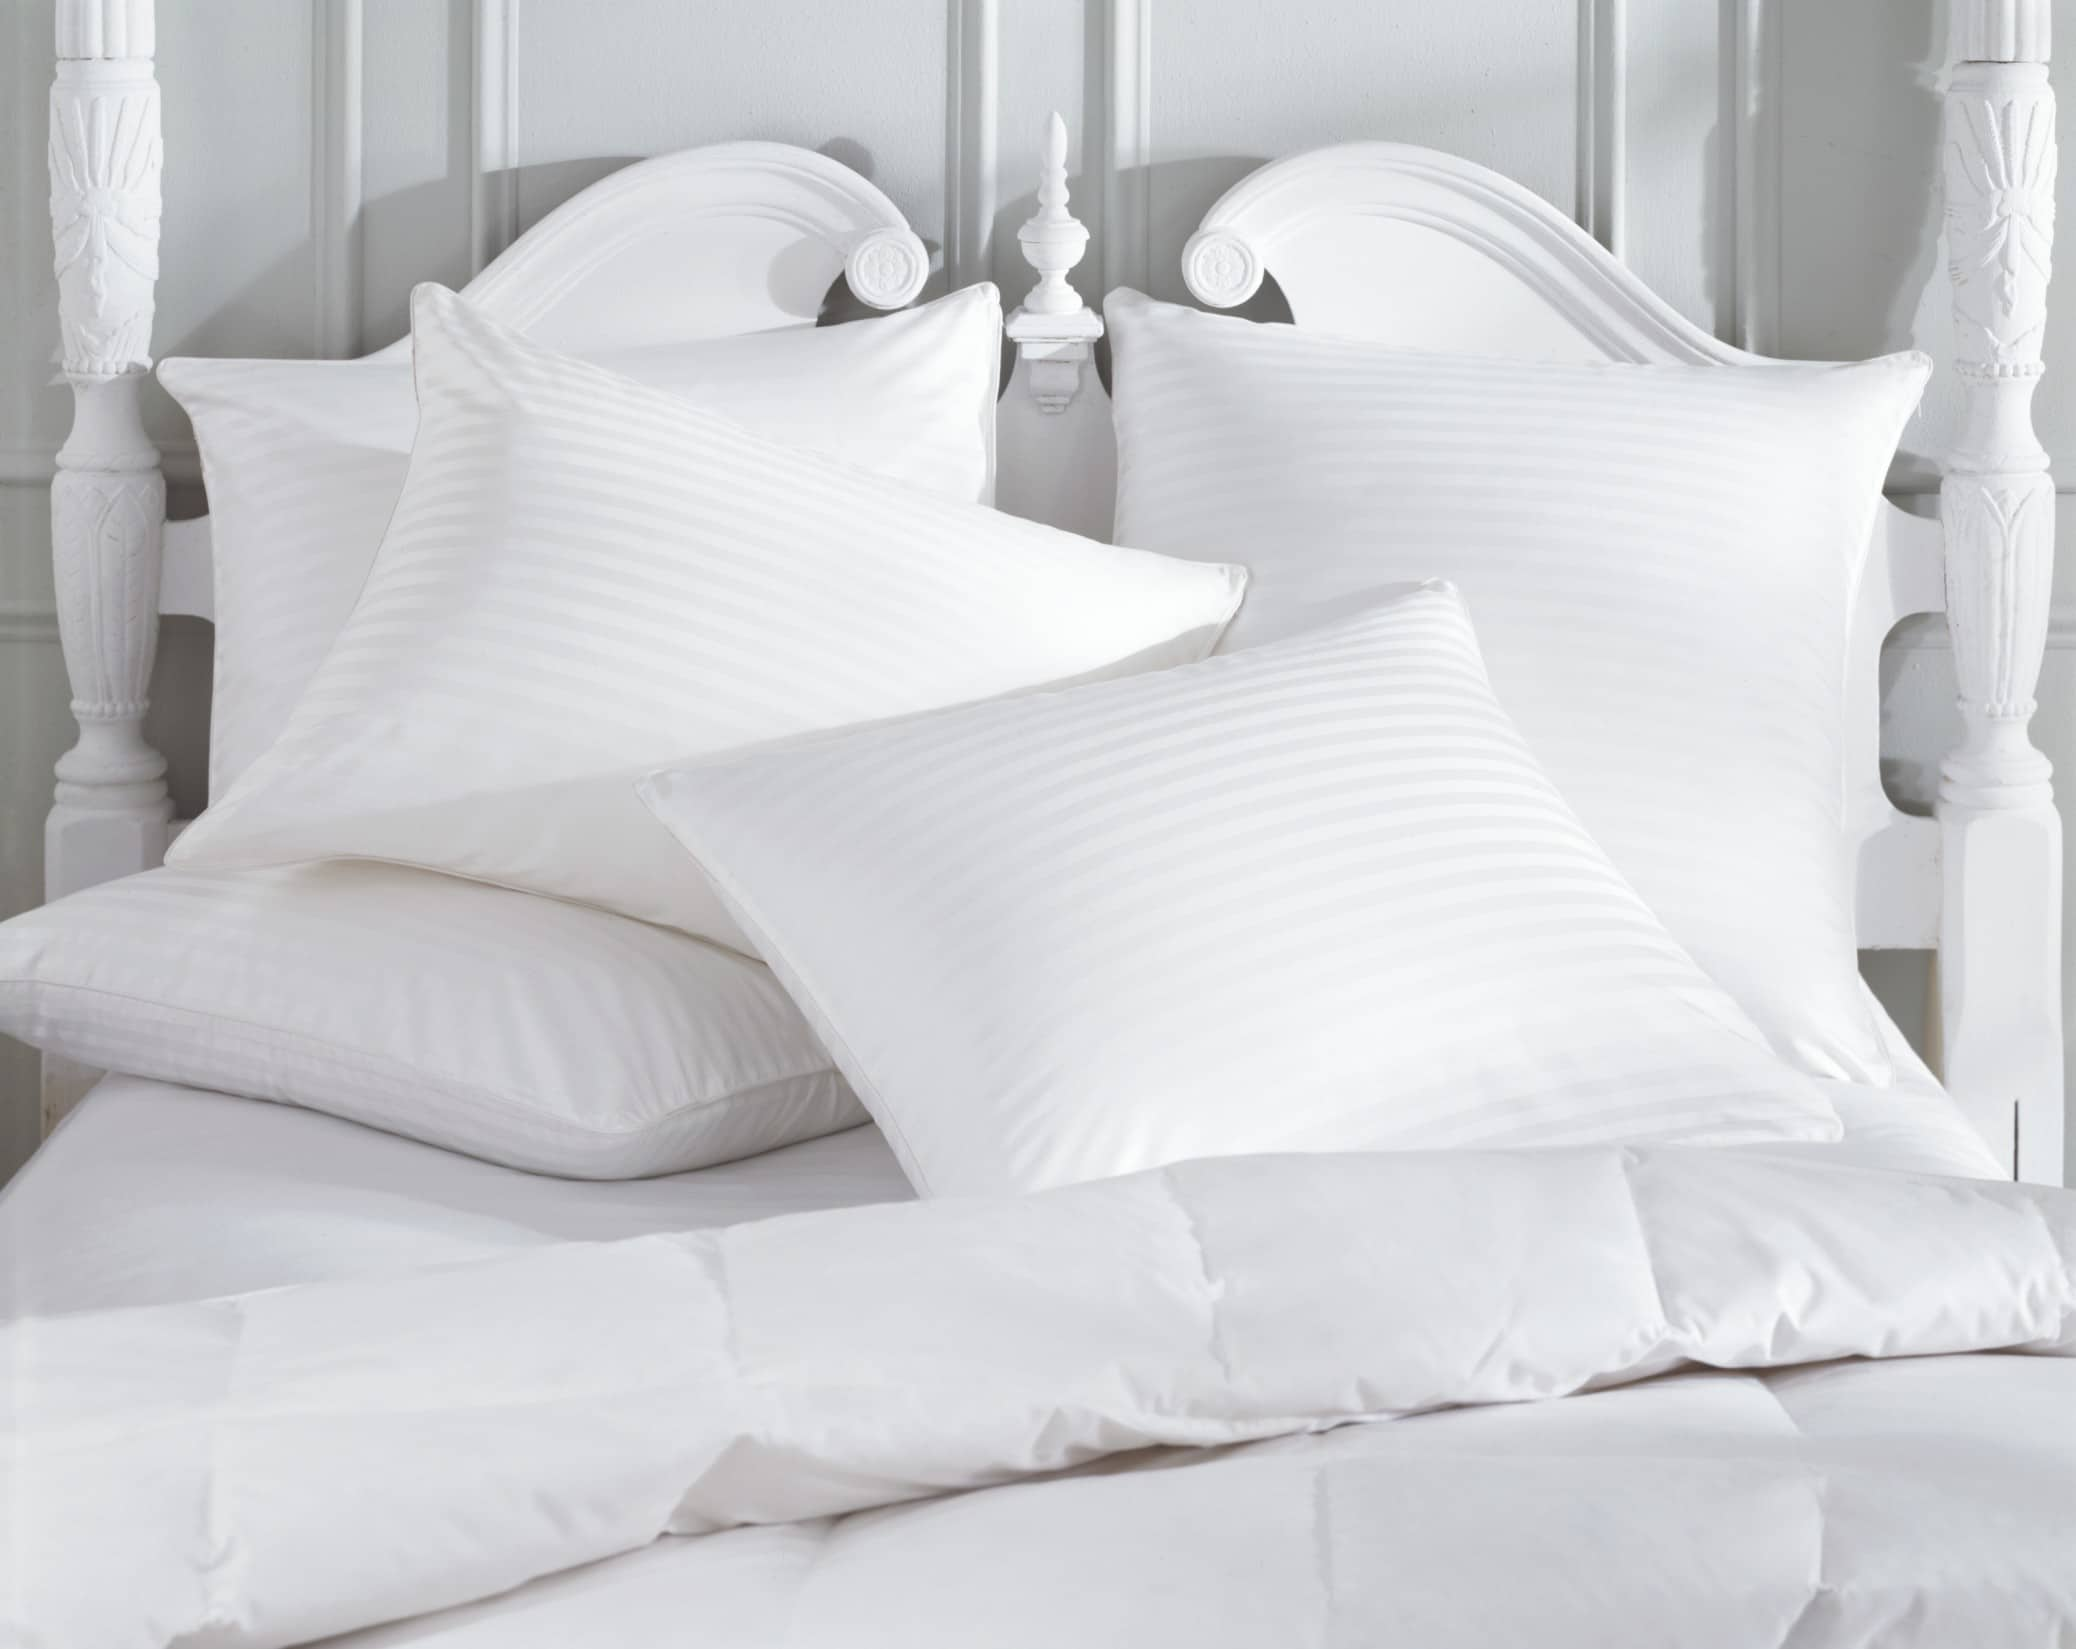 How to clean pillows flower maid for Average life of a mattress